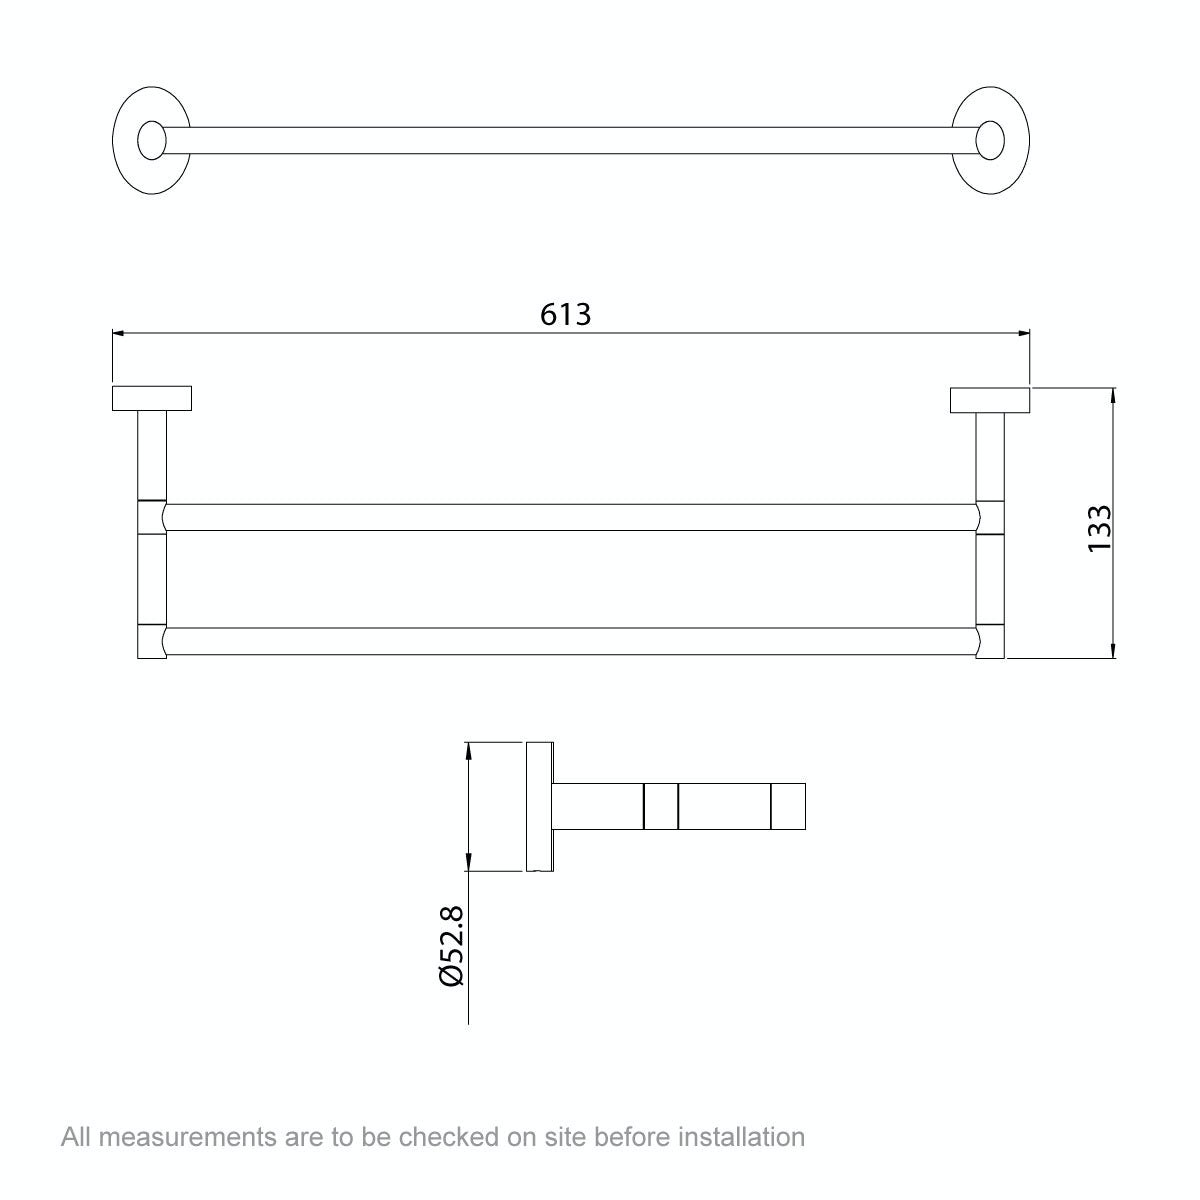 Dimensions for Orchard Lunar double towel rail